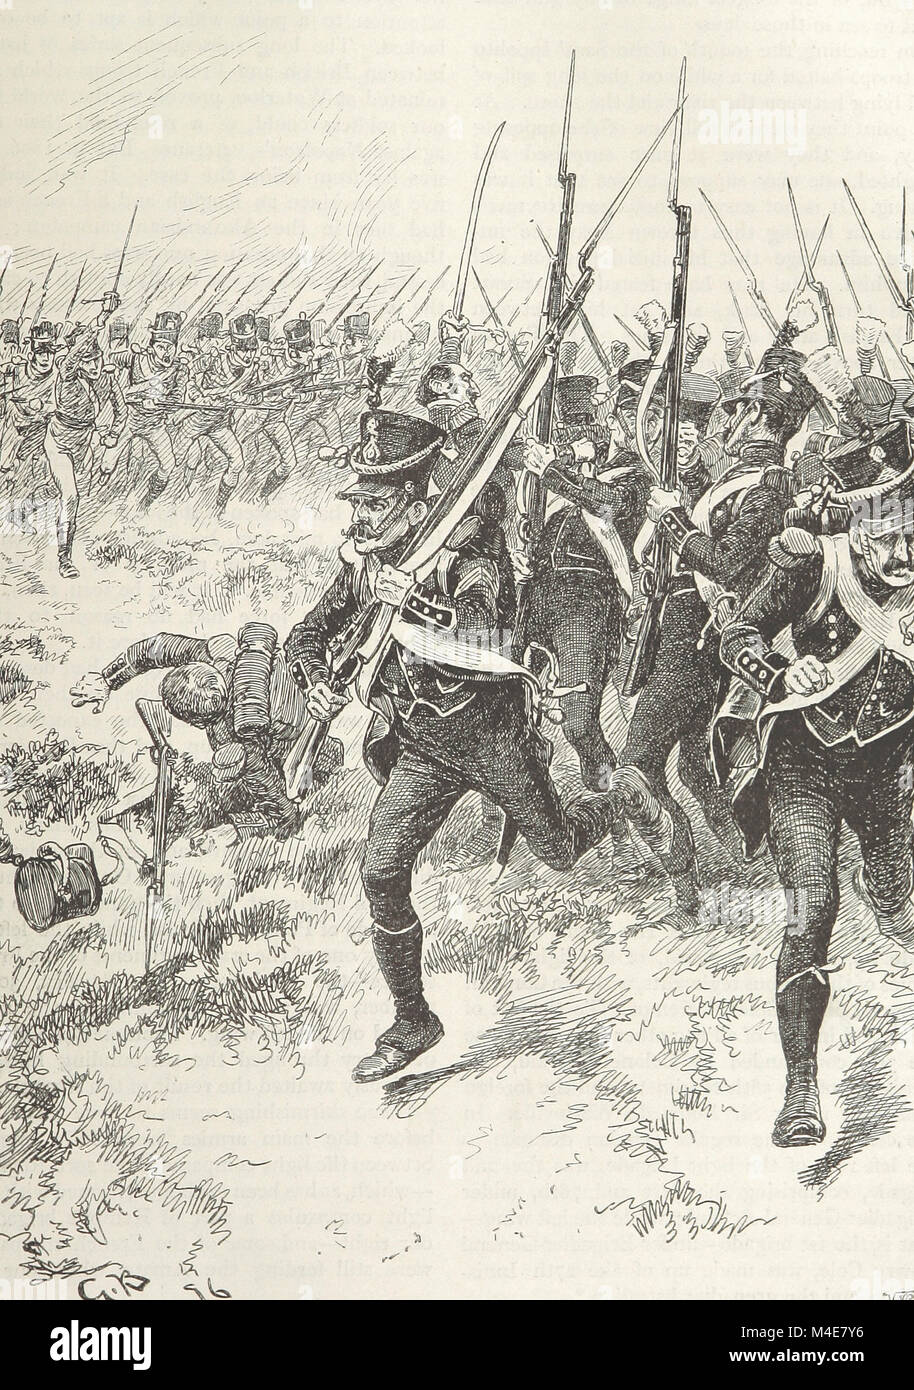 An illustration of the French 1st Light Infantry Regiment breaking at the Battle of Maida. July 4, 1806. They broke - Stock Image